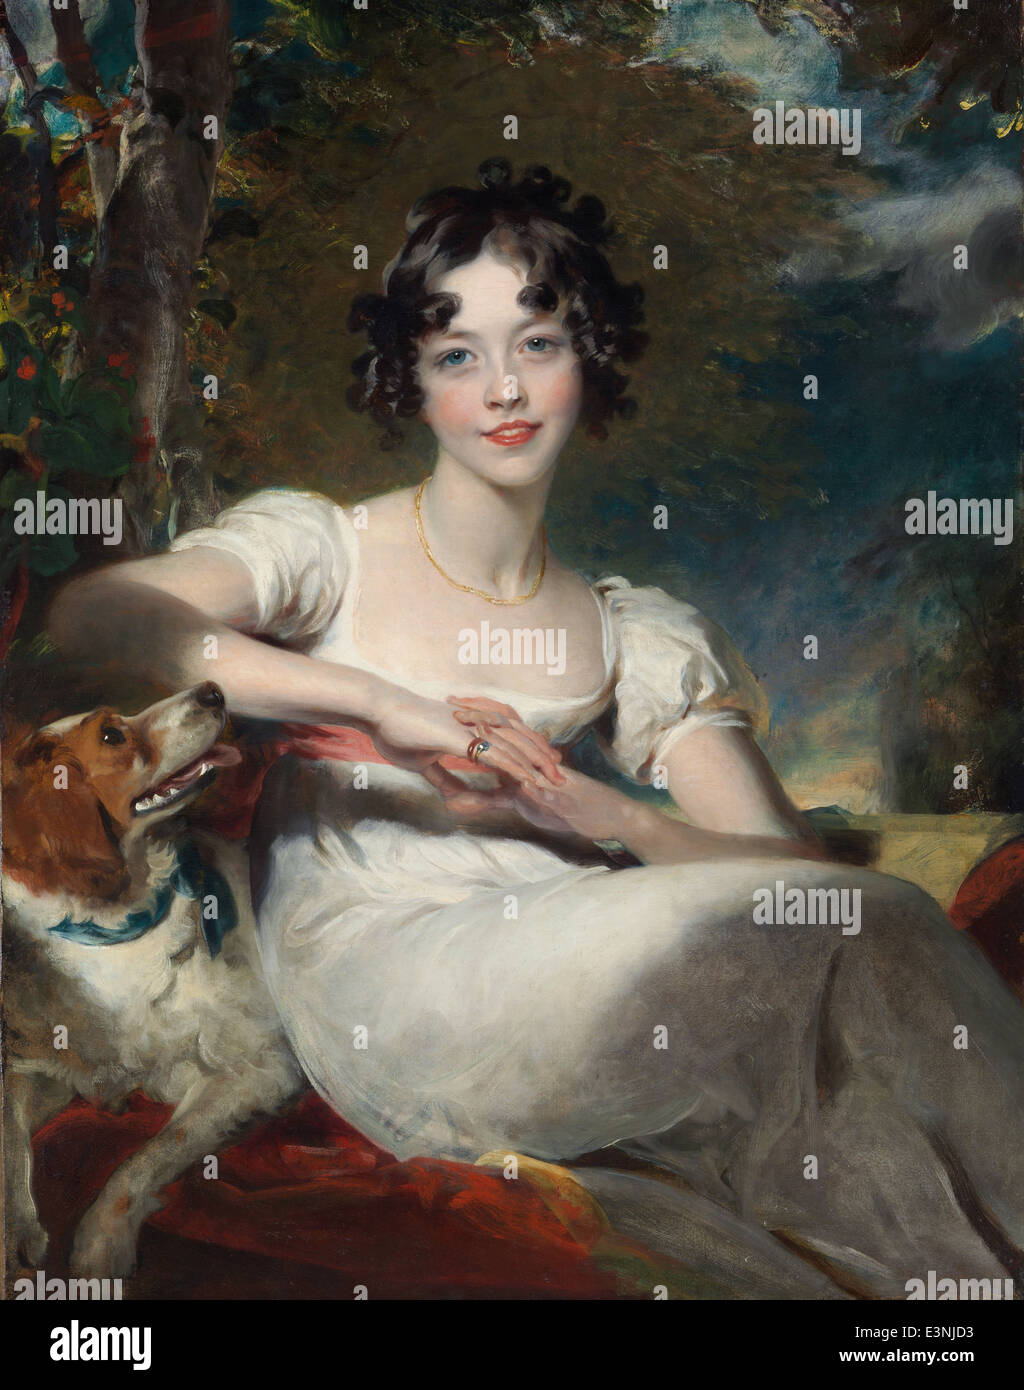 Sir Thomas Lawrence - Lady Maria Conyngham - 1825 - Stock Image